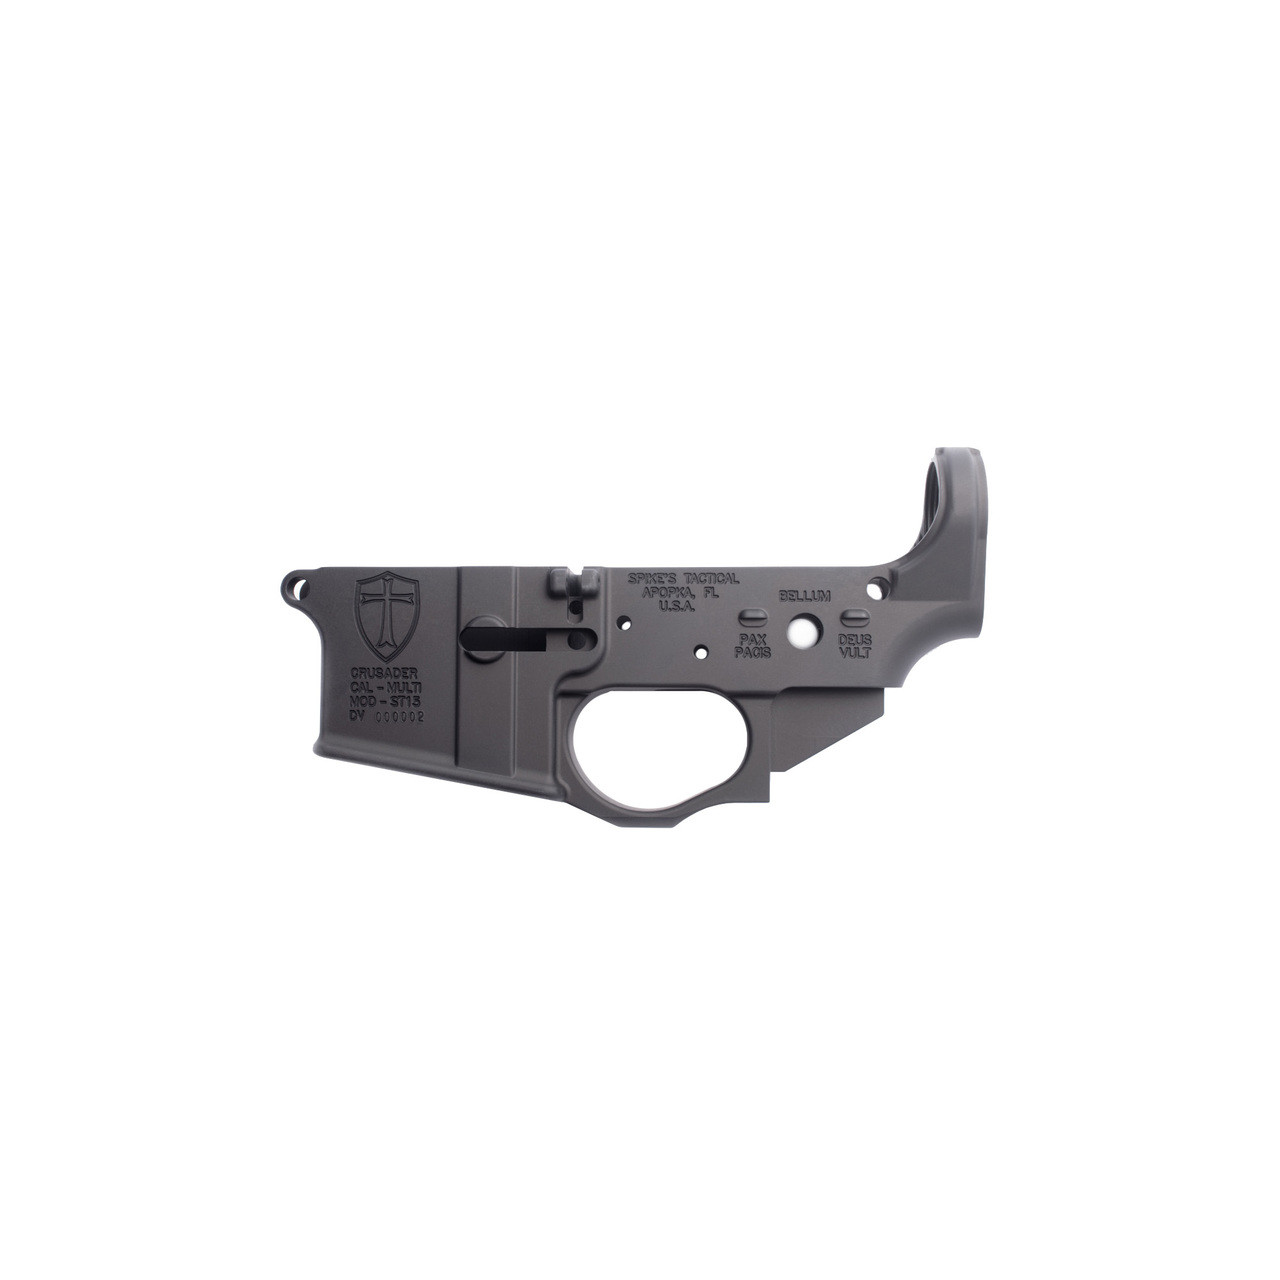 Spike's Tactical Stripped Lower(CALICO JACK) CALIFORNIA LEGAL - .223/5.56